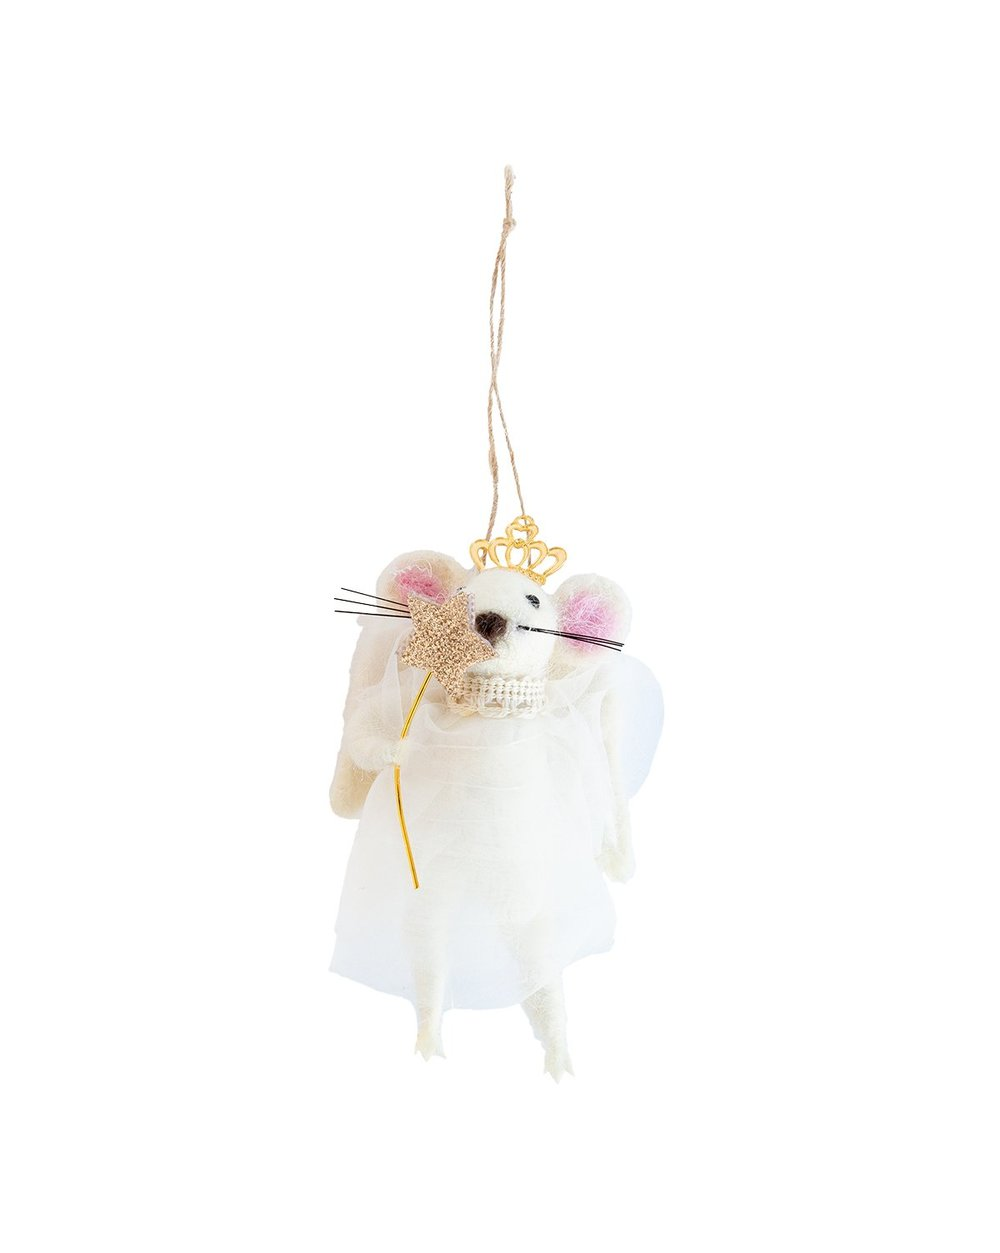 Mouse_Ornament_1.jpg